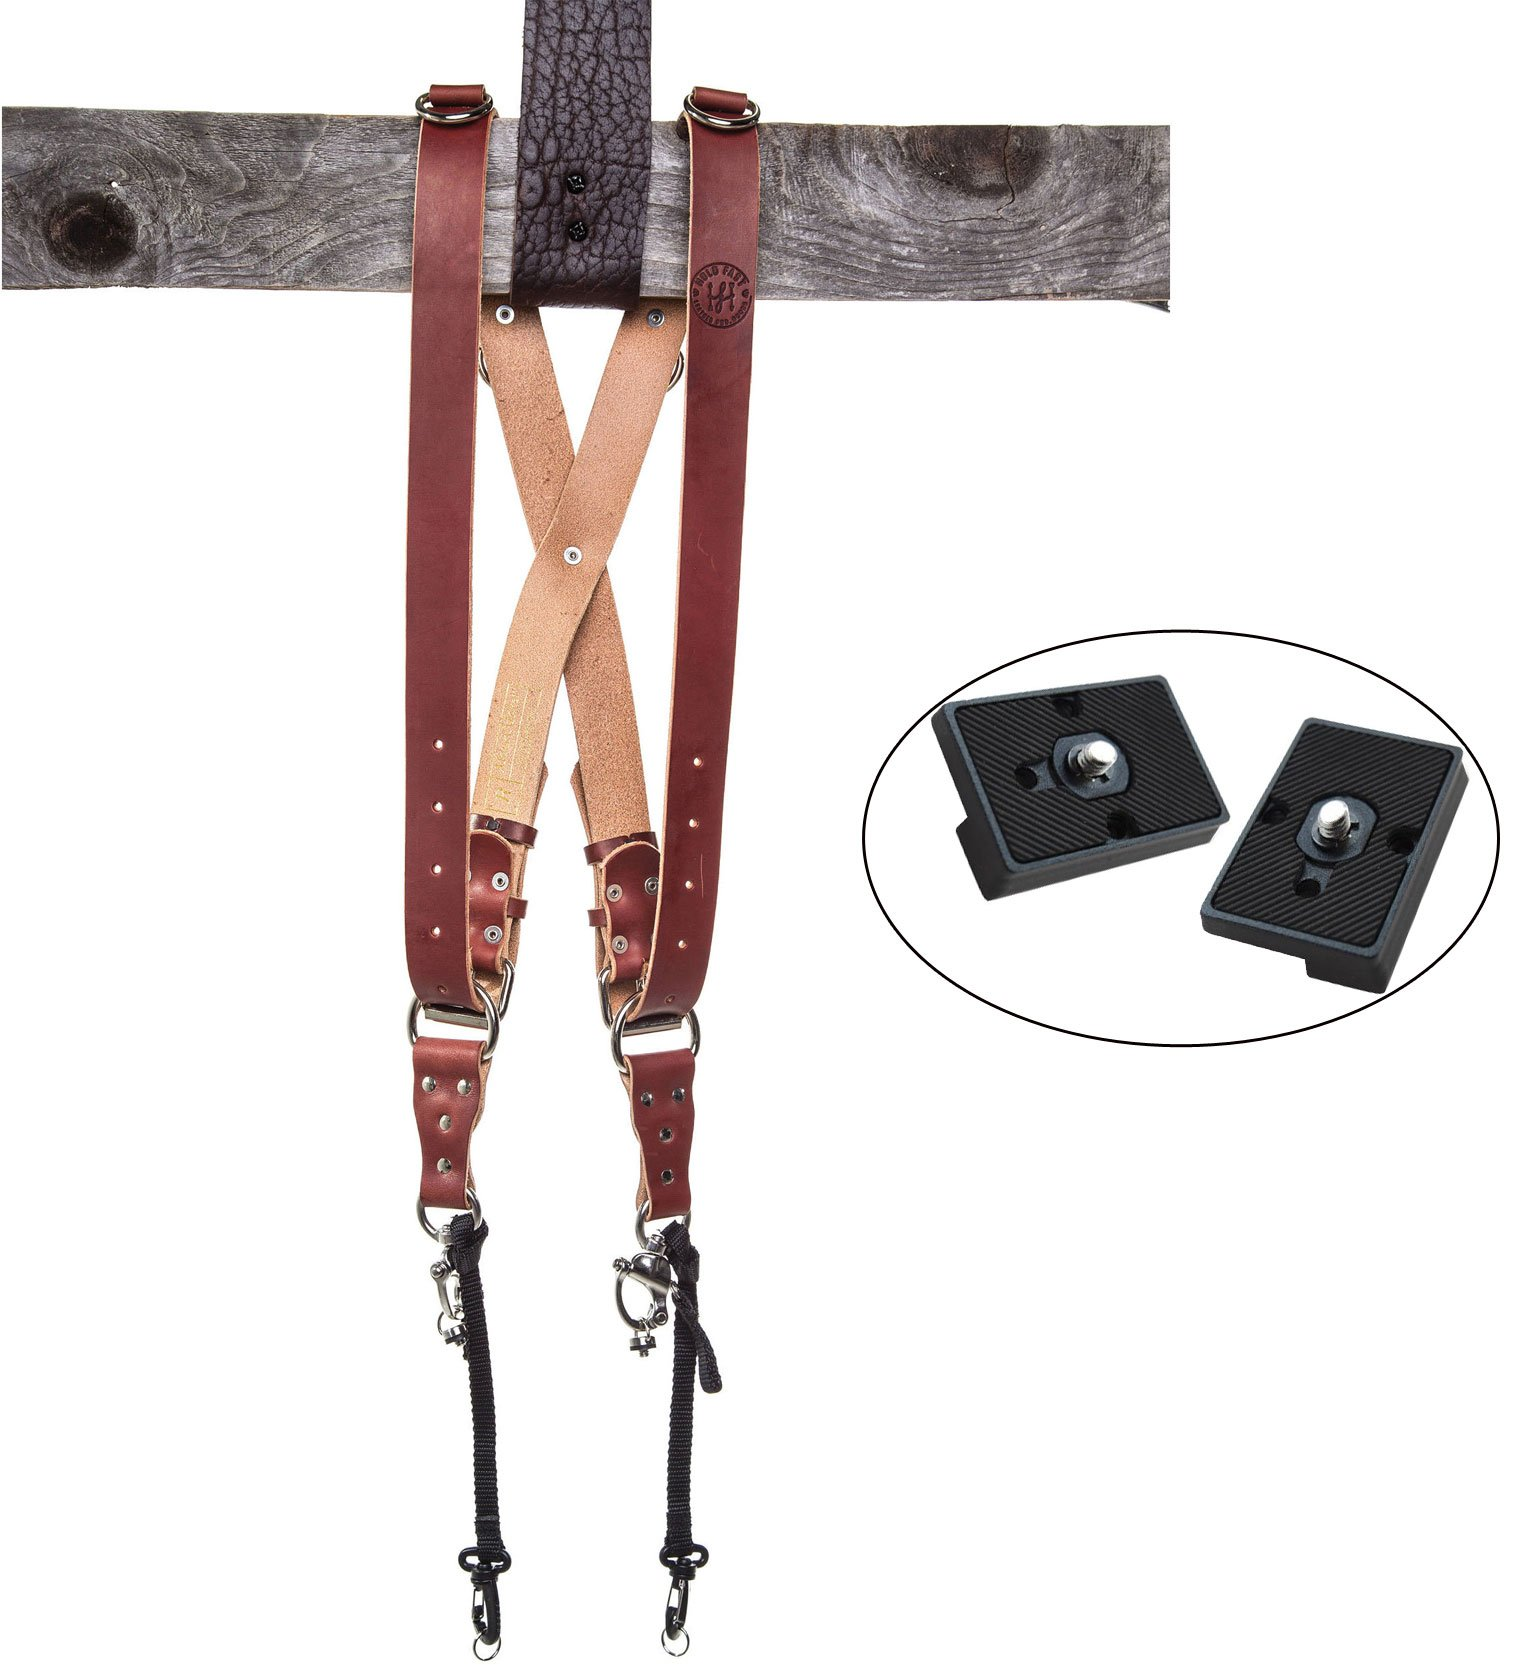 Holdfast Gear Money Maker Multi-Camera Harness, Bridle Leather Chestnut (Medium) and Two Replacement Plates For The Manfrotto RC2 Rapid Connect Adapter by Holdfast